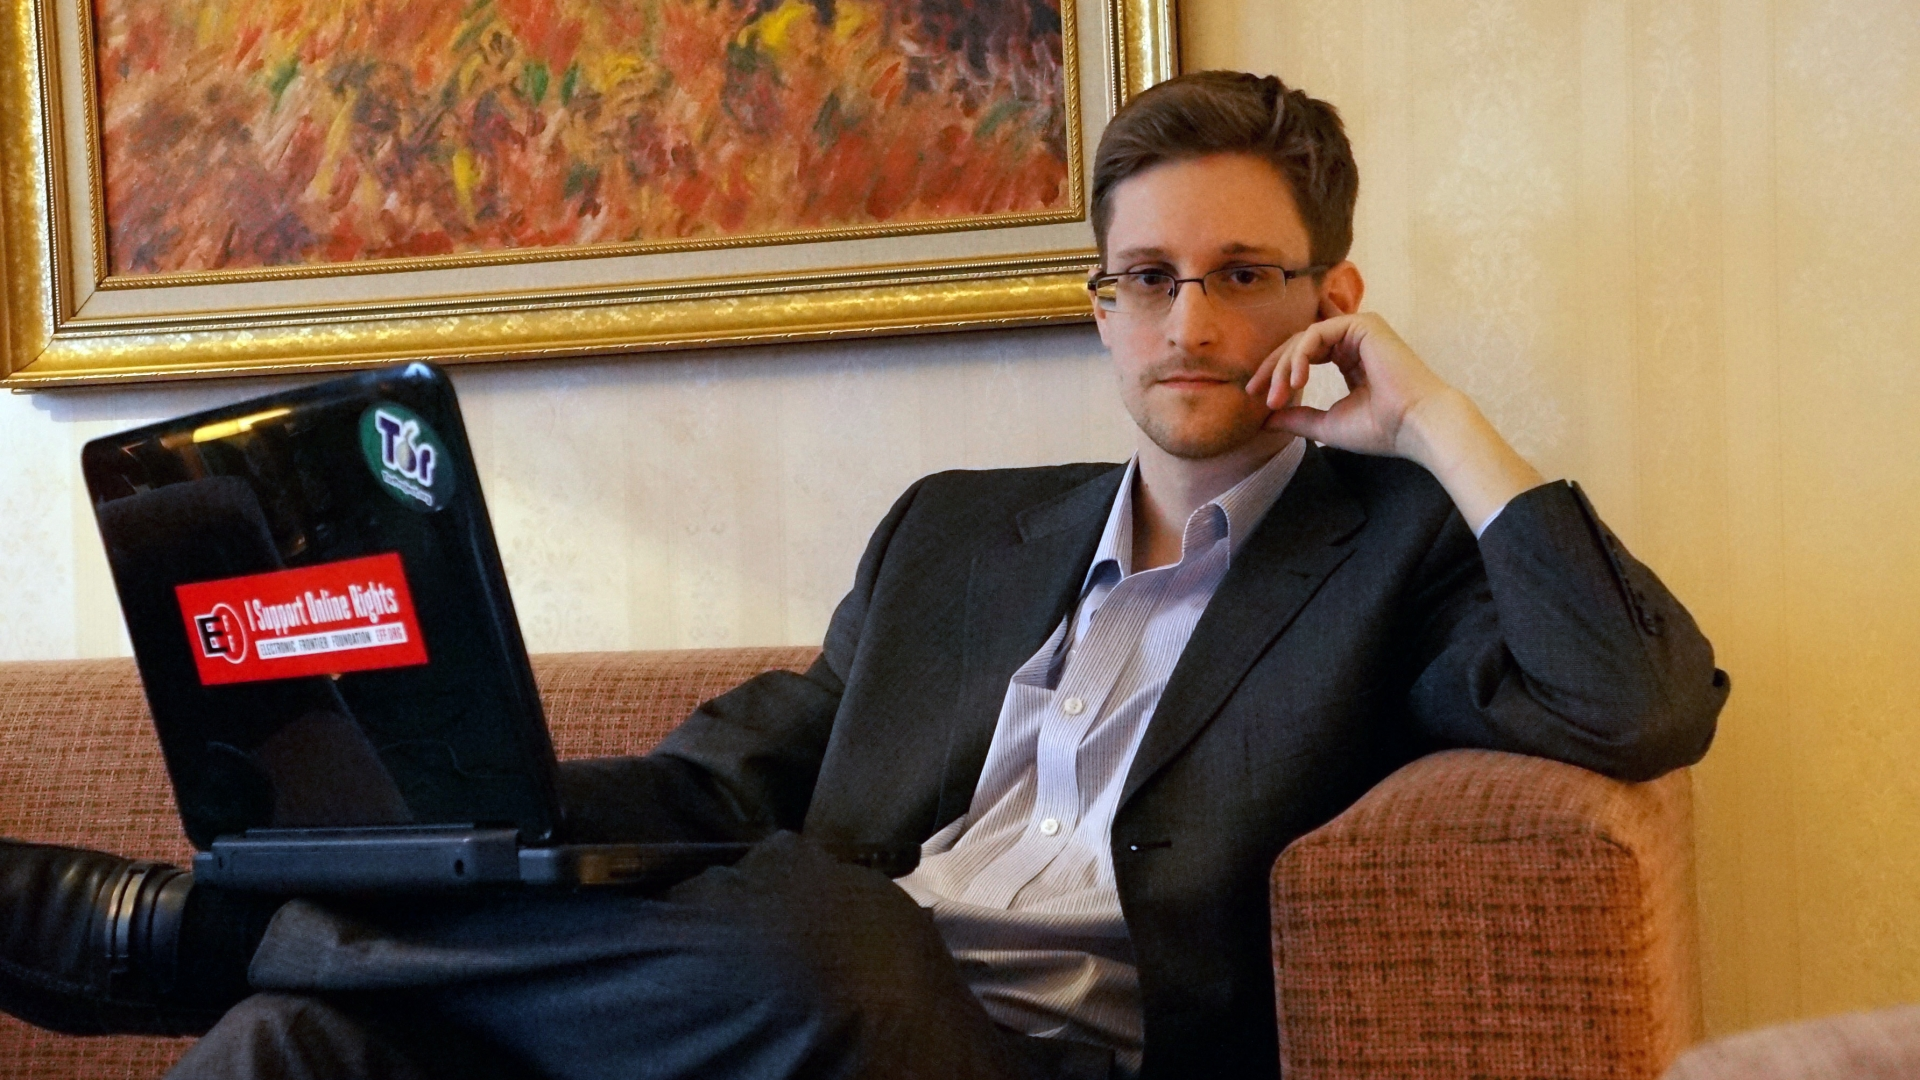 Former intelligence contractor Edward Snowden before an interview in Russia. (Credit: Barton Gellman/Getty Images)